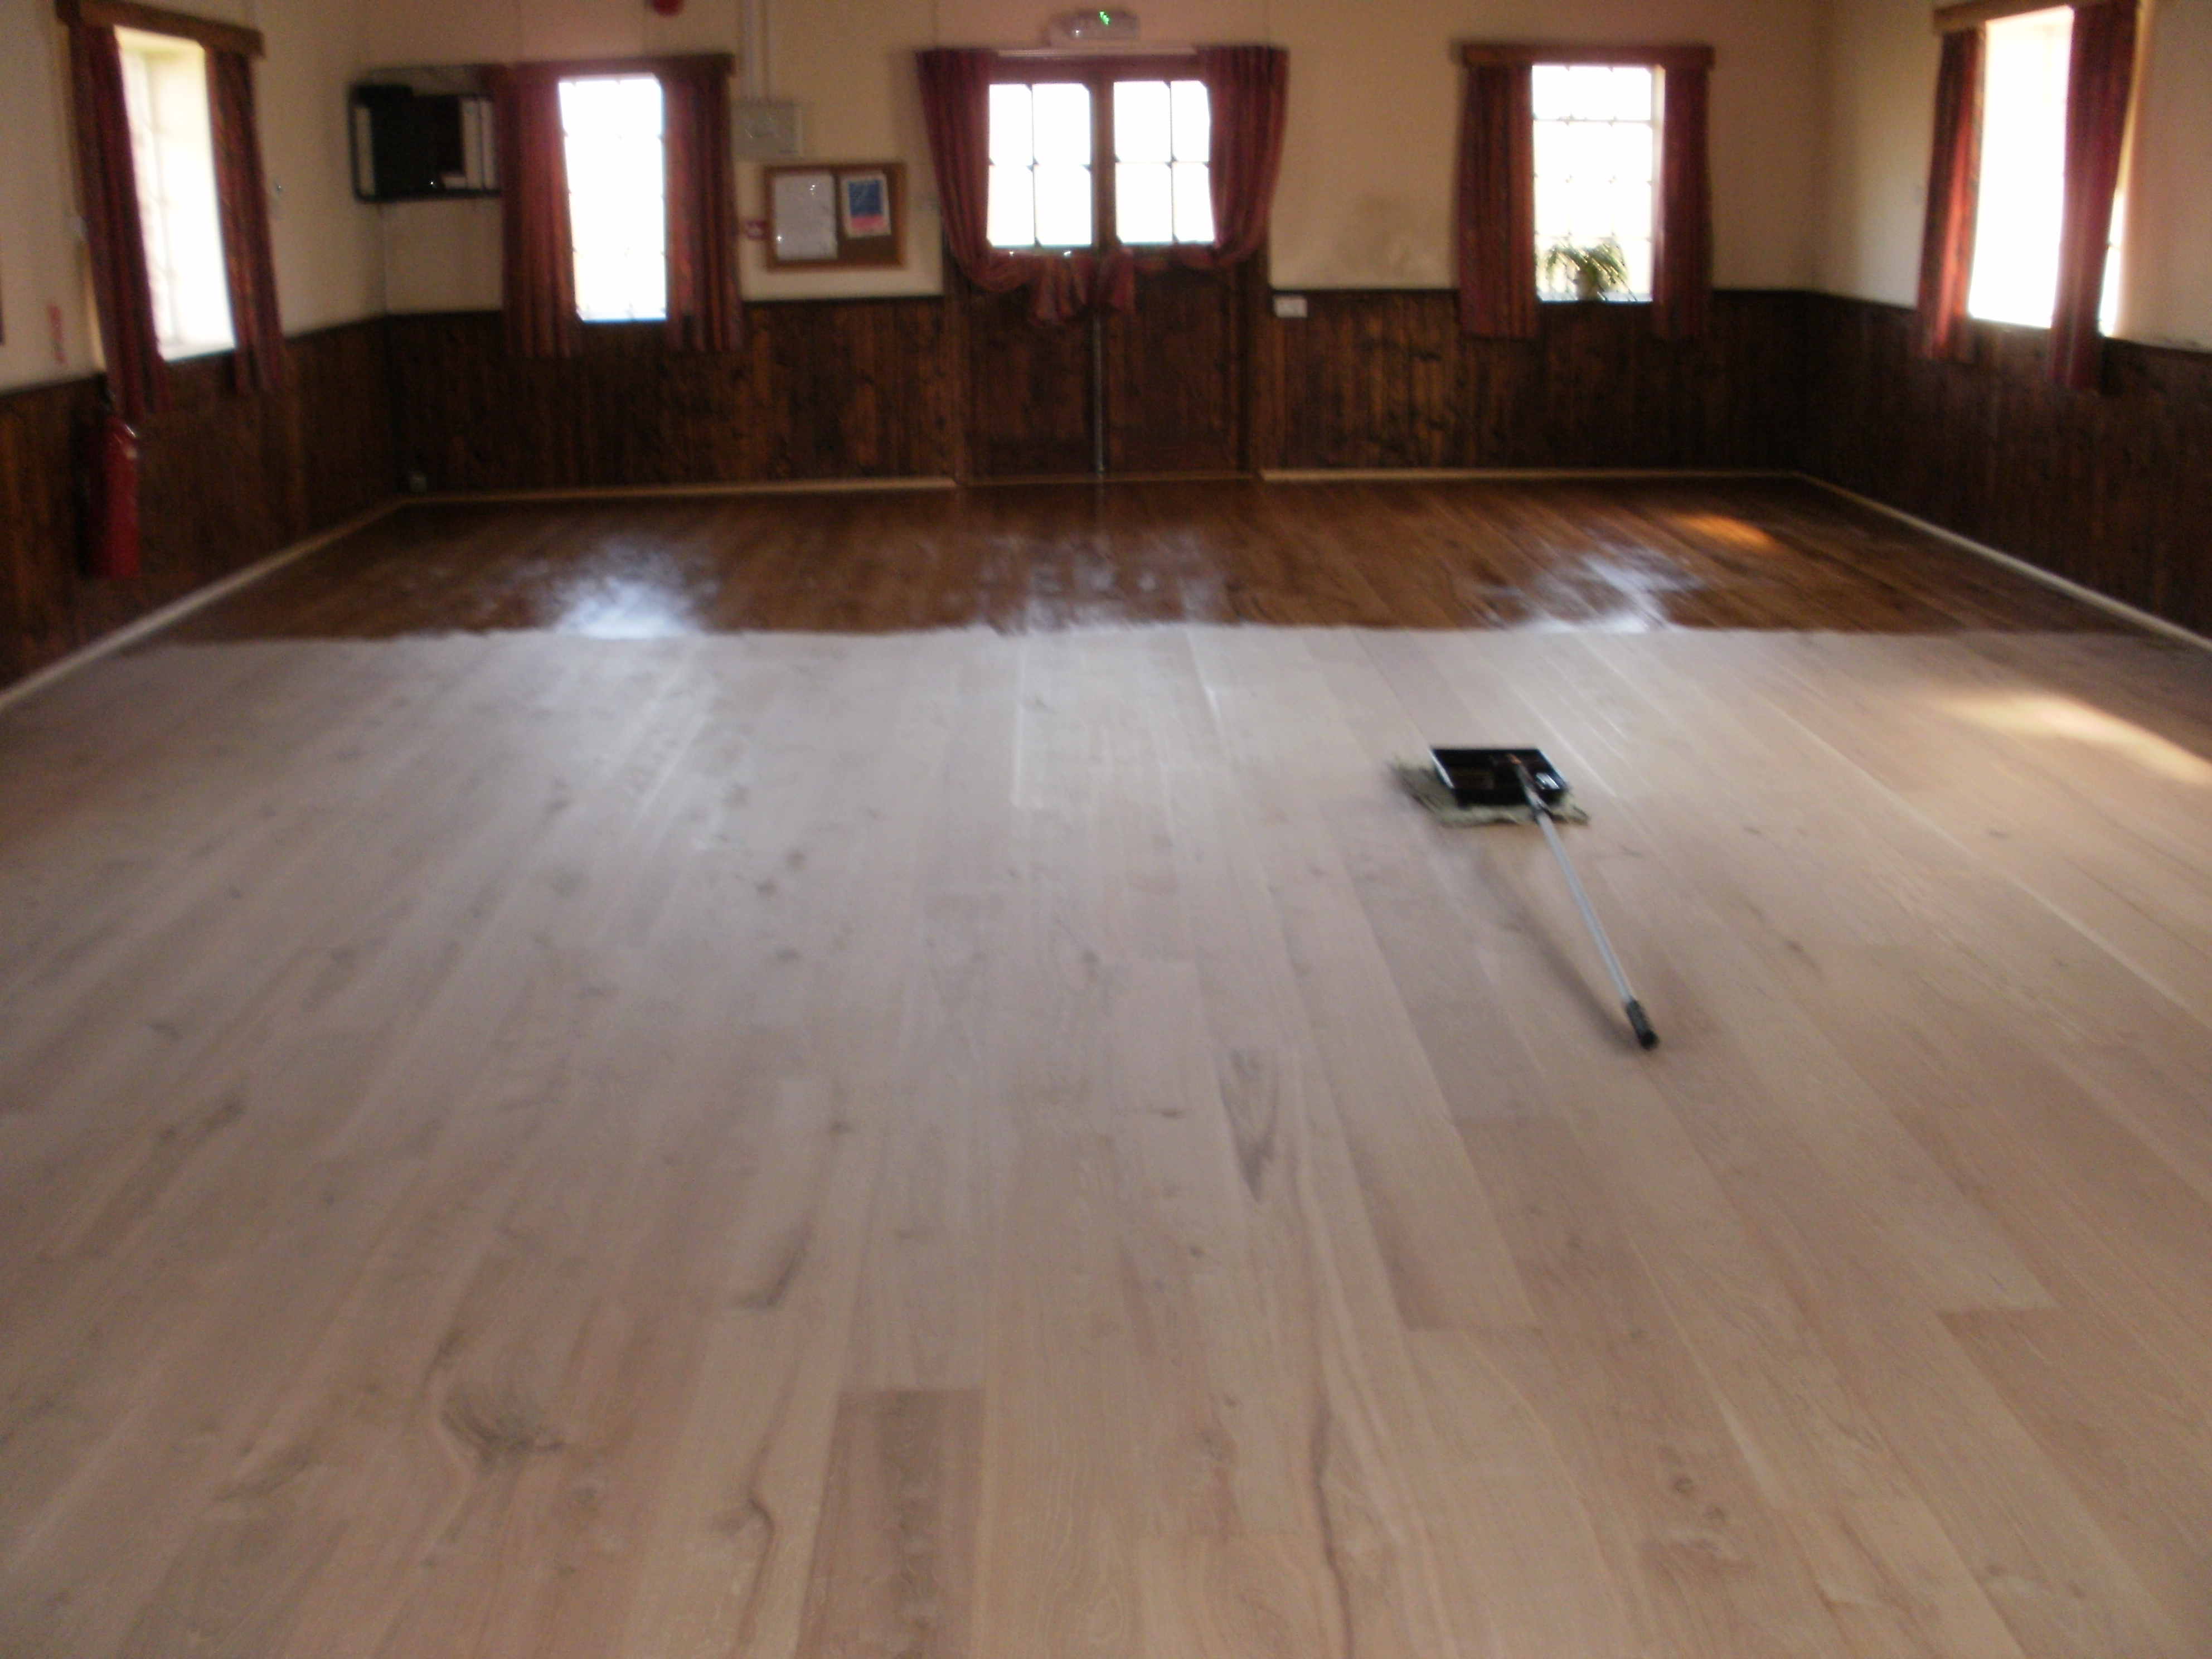 Cleaning and polishing a dirty floor